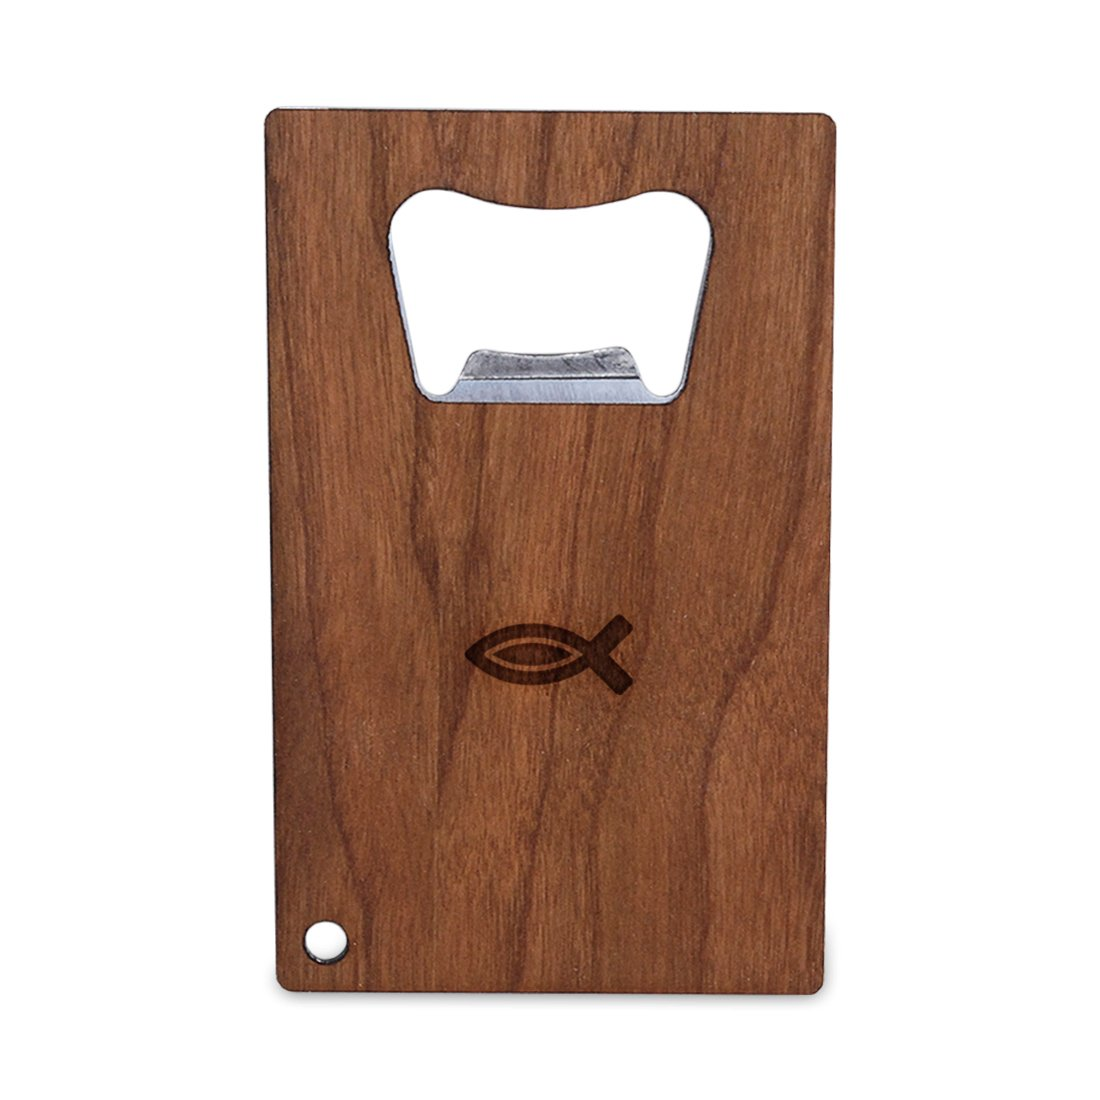 Christian Fish Bottle Opener With Wood, Stainless Steel Credit Card Size, Bottle Opener For Your Wallet, Credit Card Size Bottle Opener